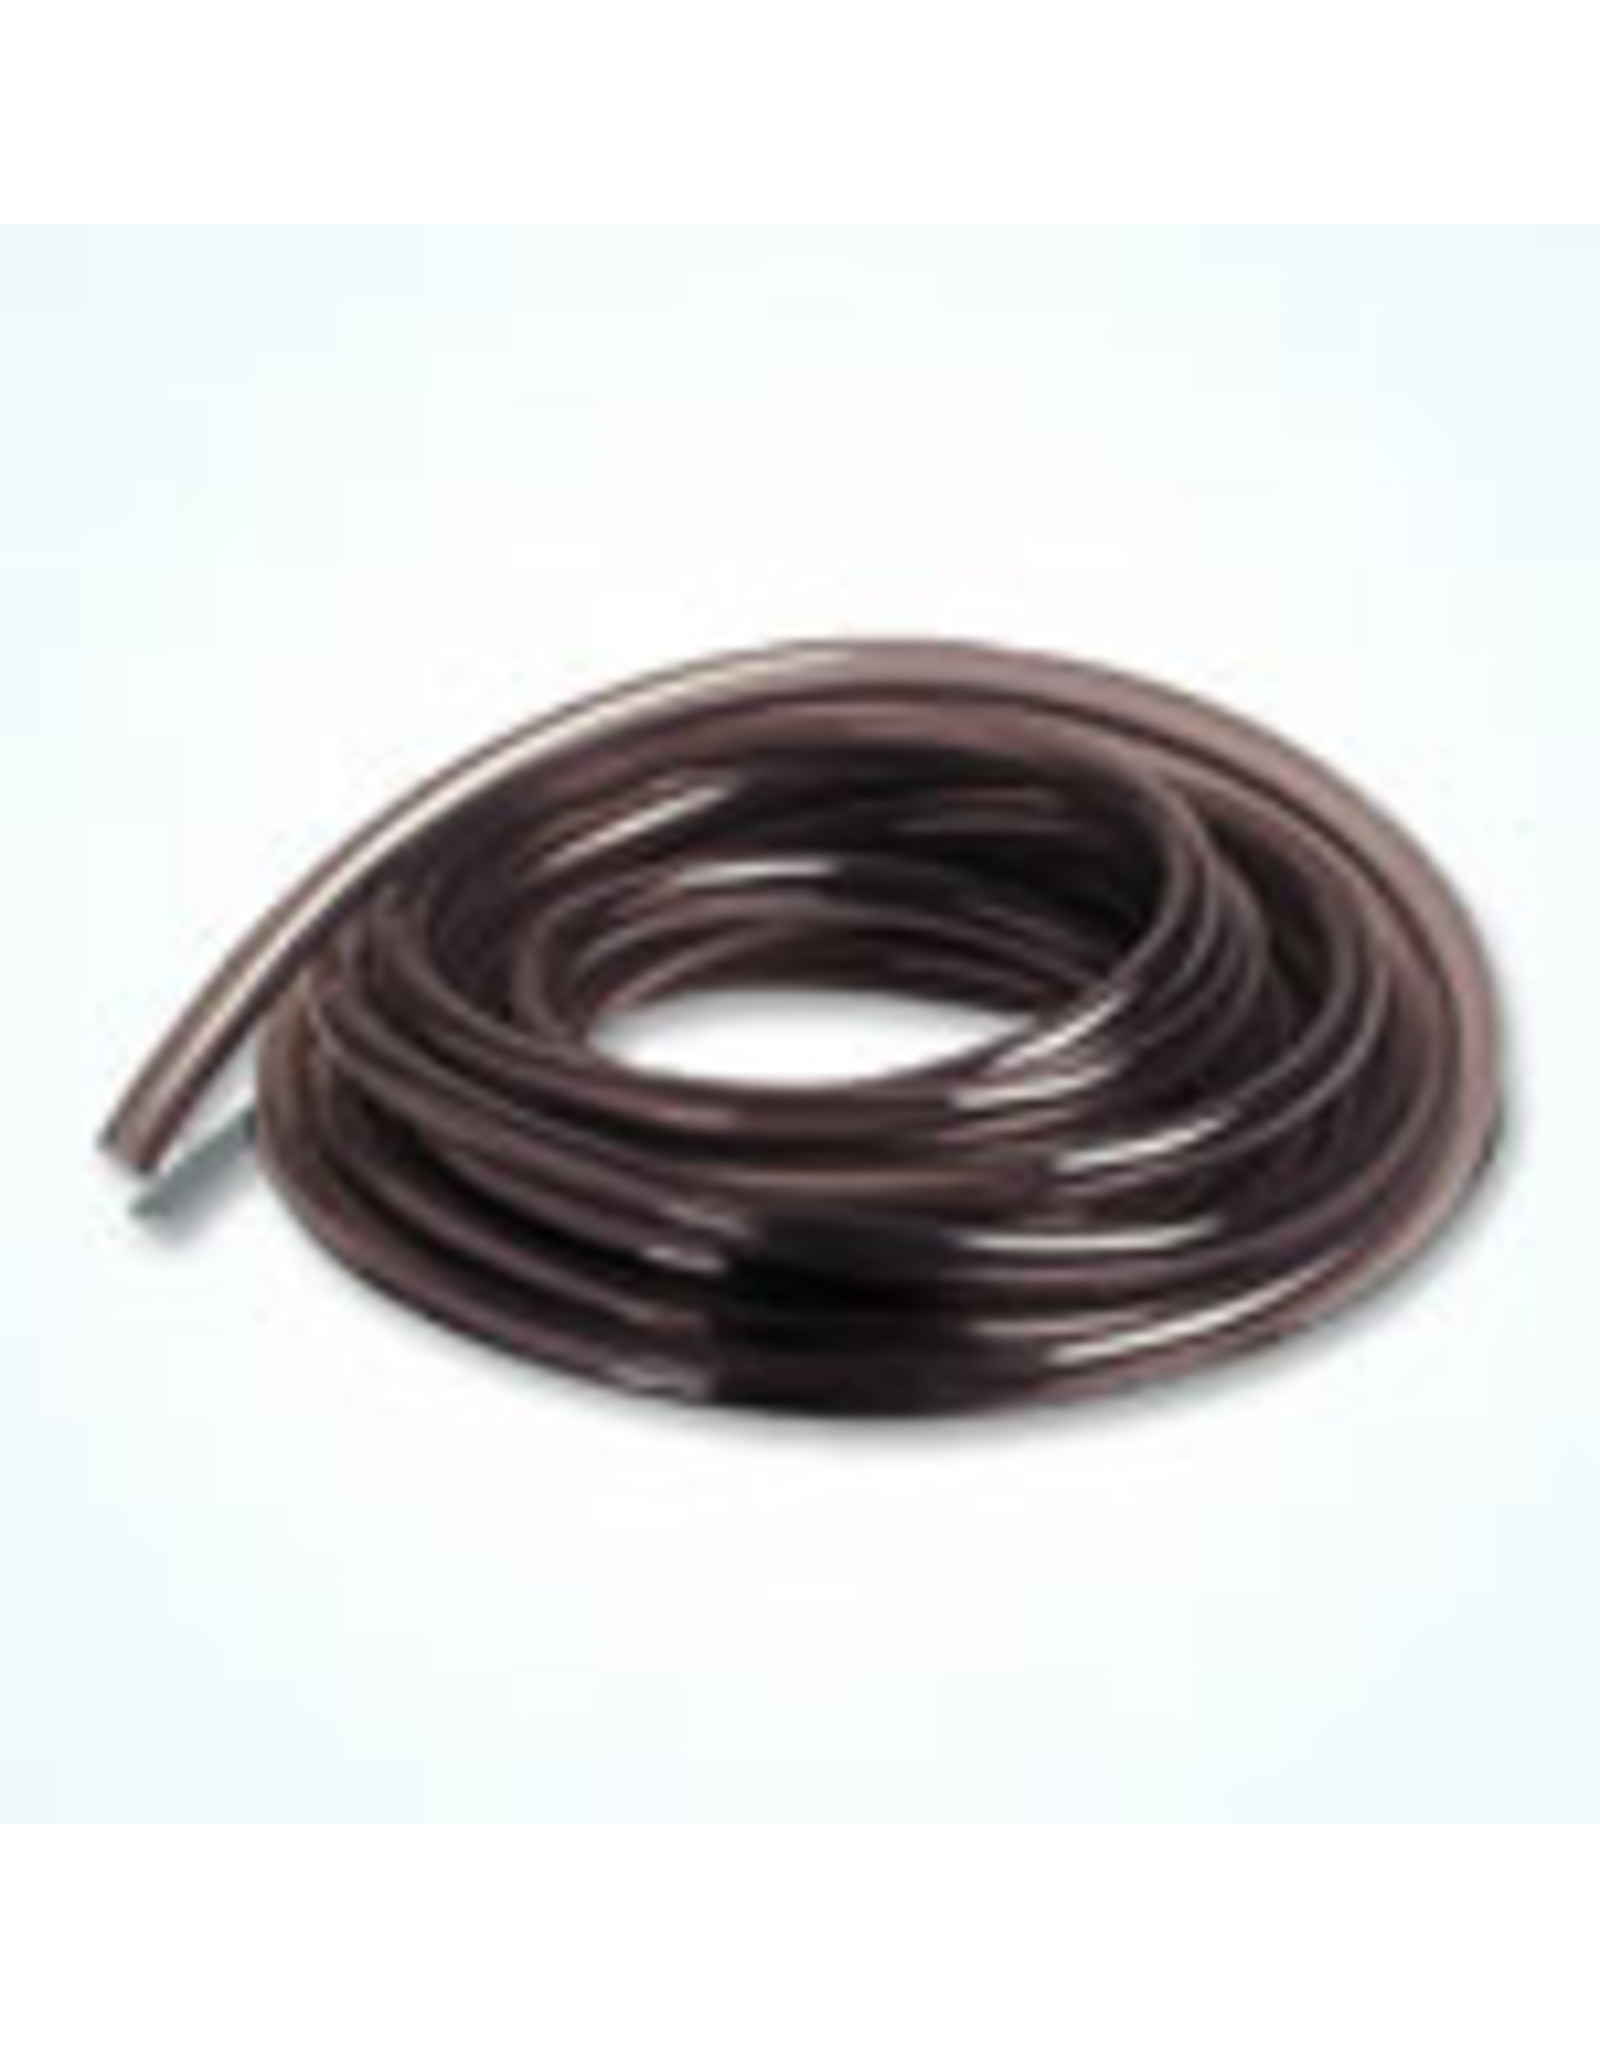 "Tubing Black Soft Line 1/2"" - Per Foot"